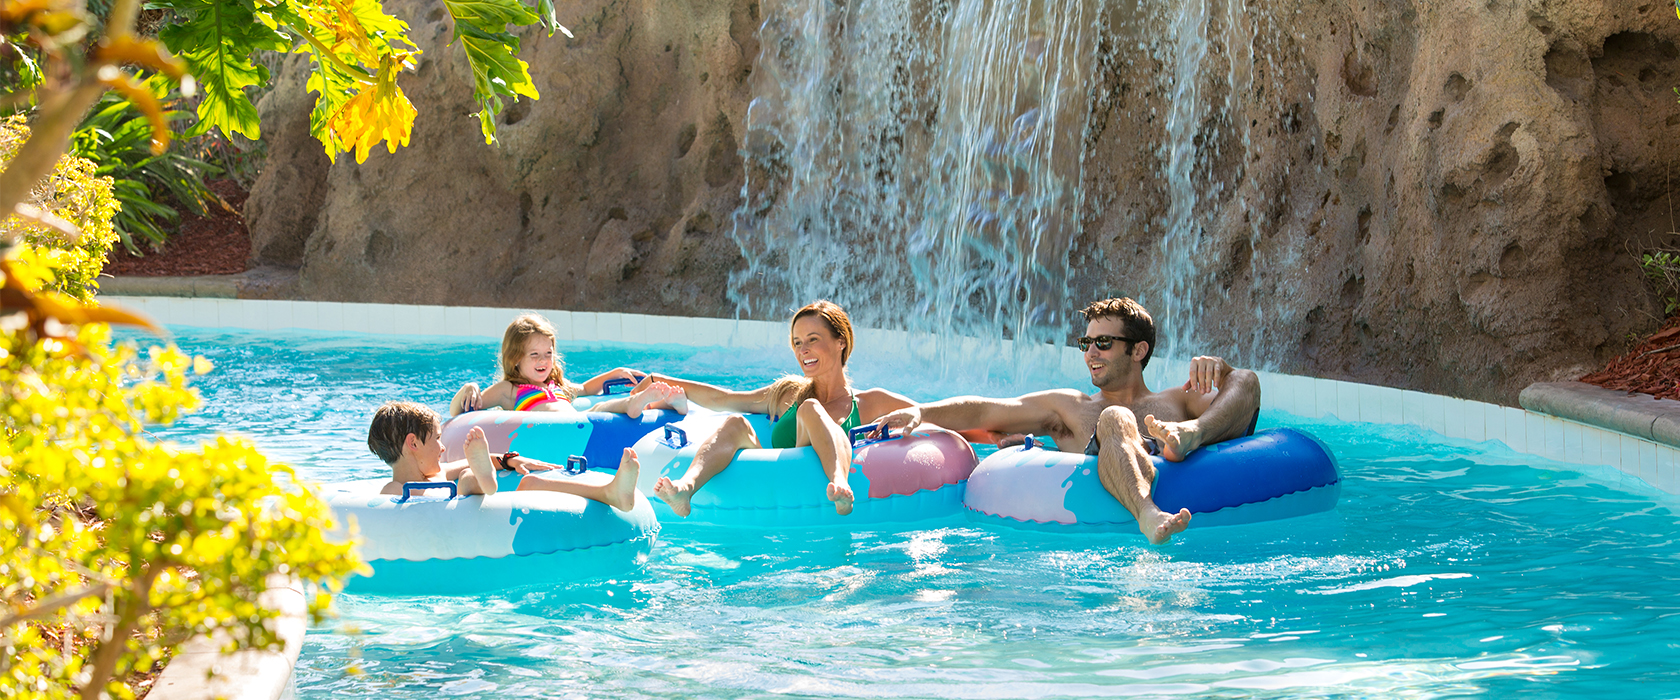 Hot Summer Deal Orlando Splash LIMITED TIME - Rates from $100/night